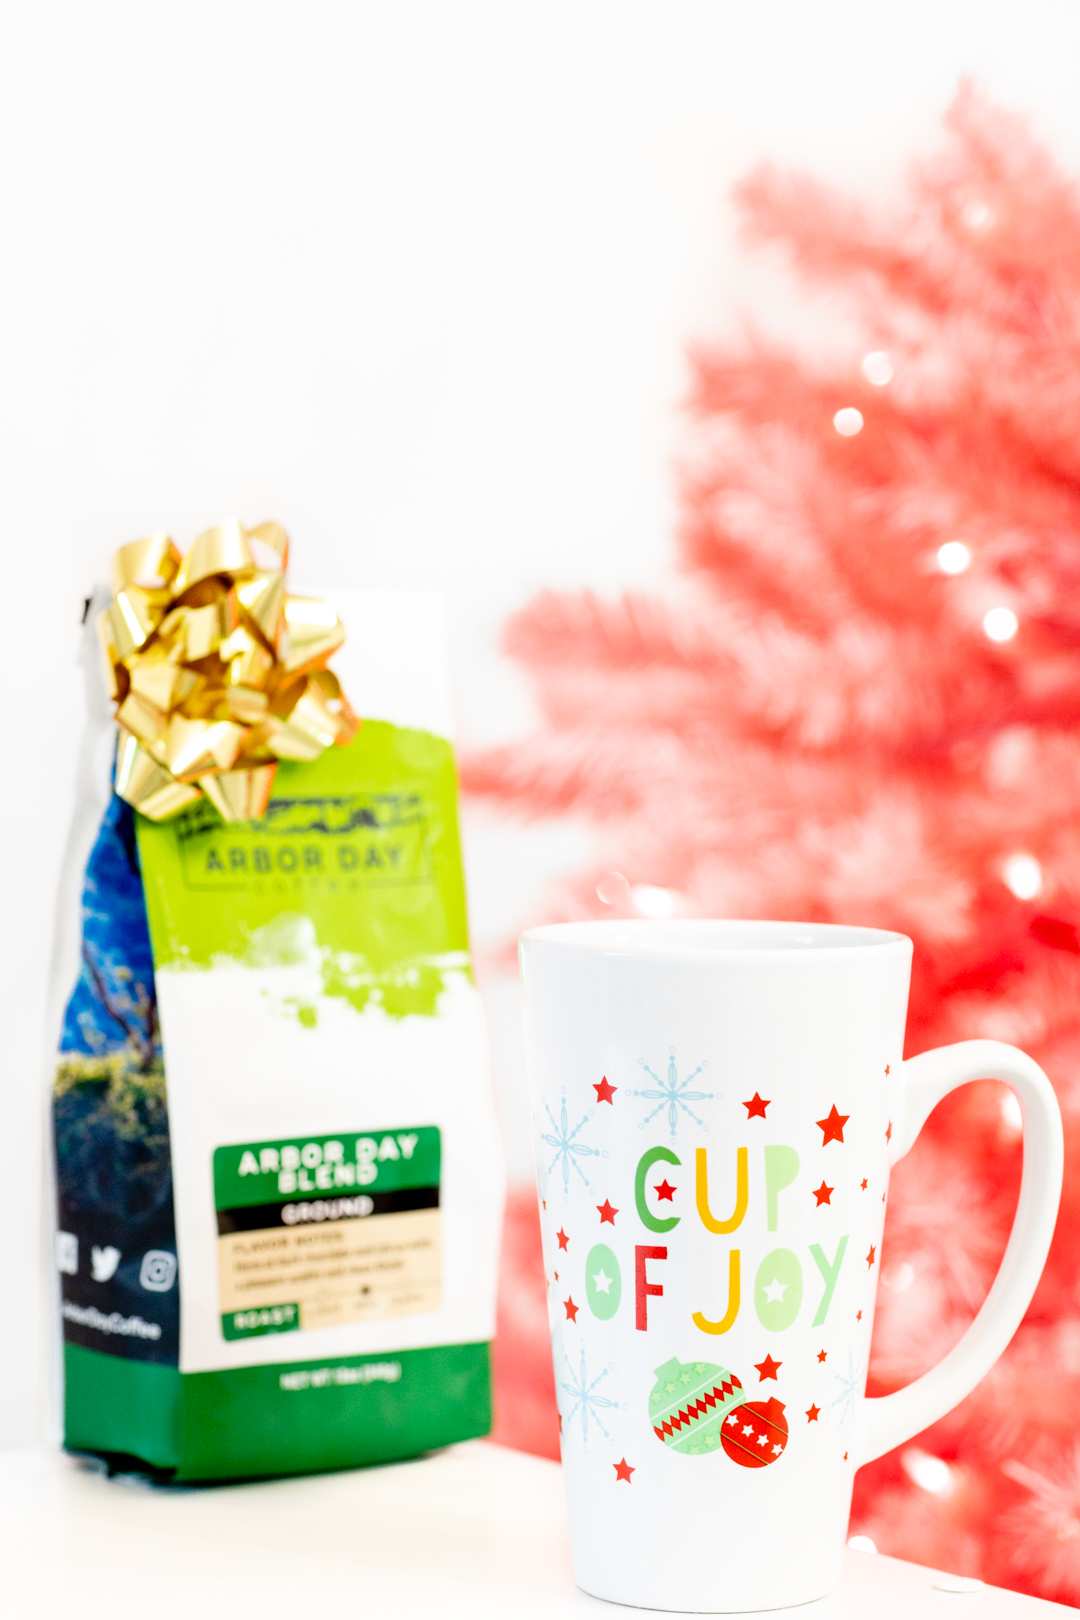 Cup of Joy Travel Mug and Coffee with Christmas Tree